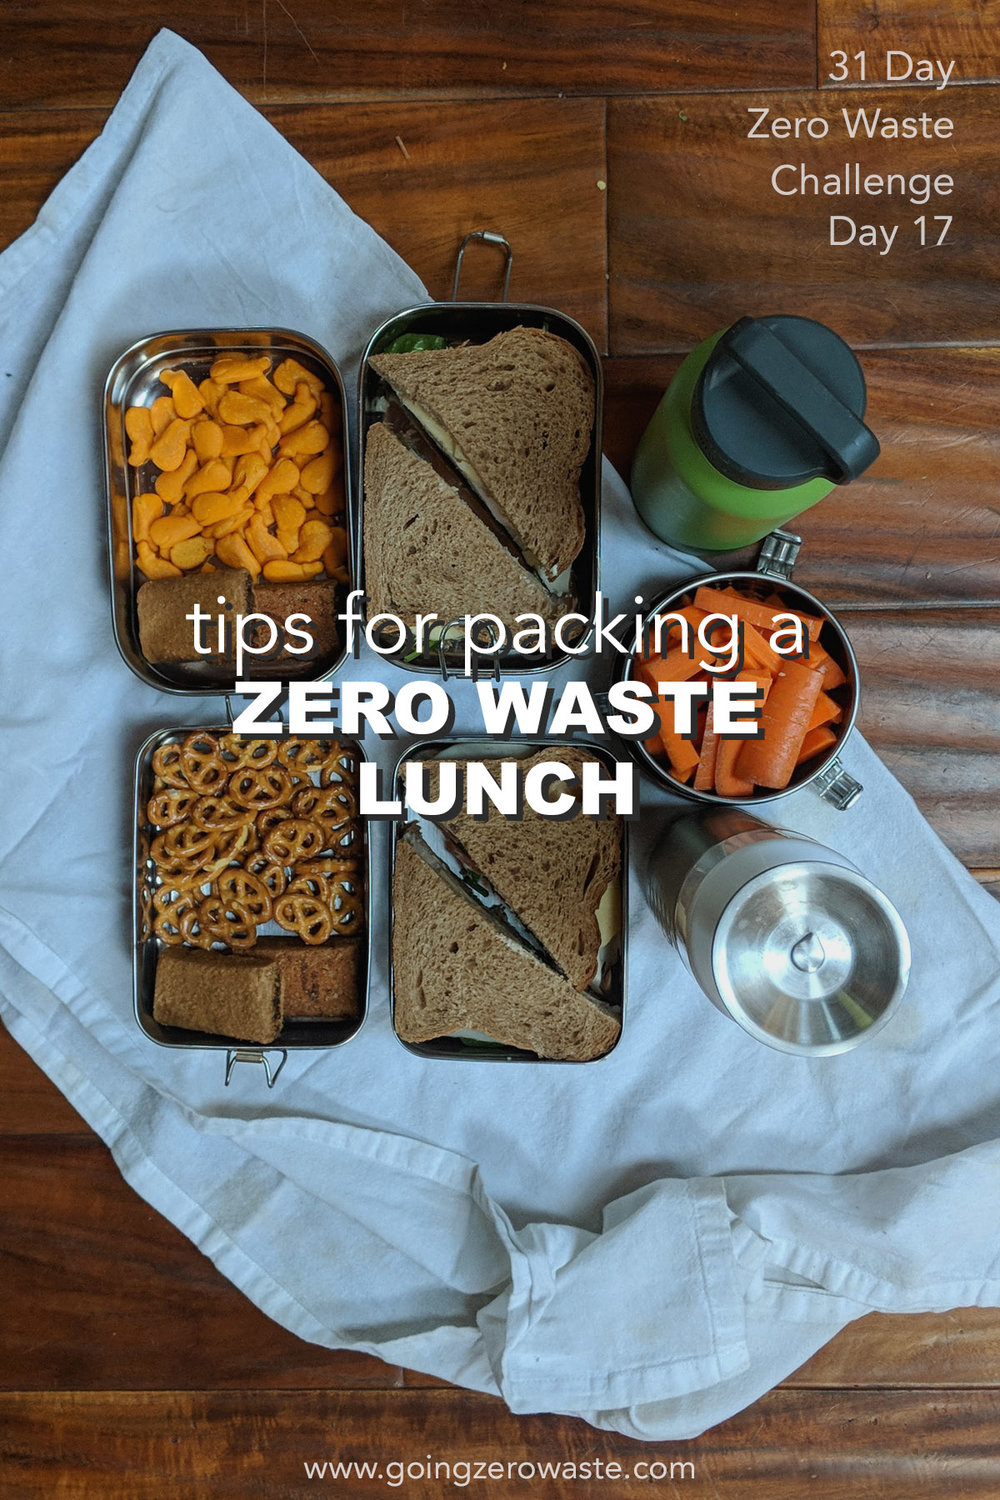 Tips for packing a zero waste lunch from www.goingzerowaste.com day 17 of the zero waste challenge #zerowaste #zerowastechallenge #lunch